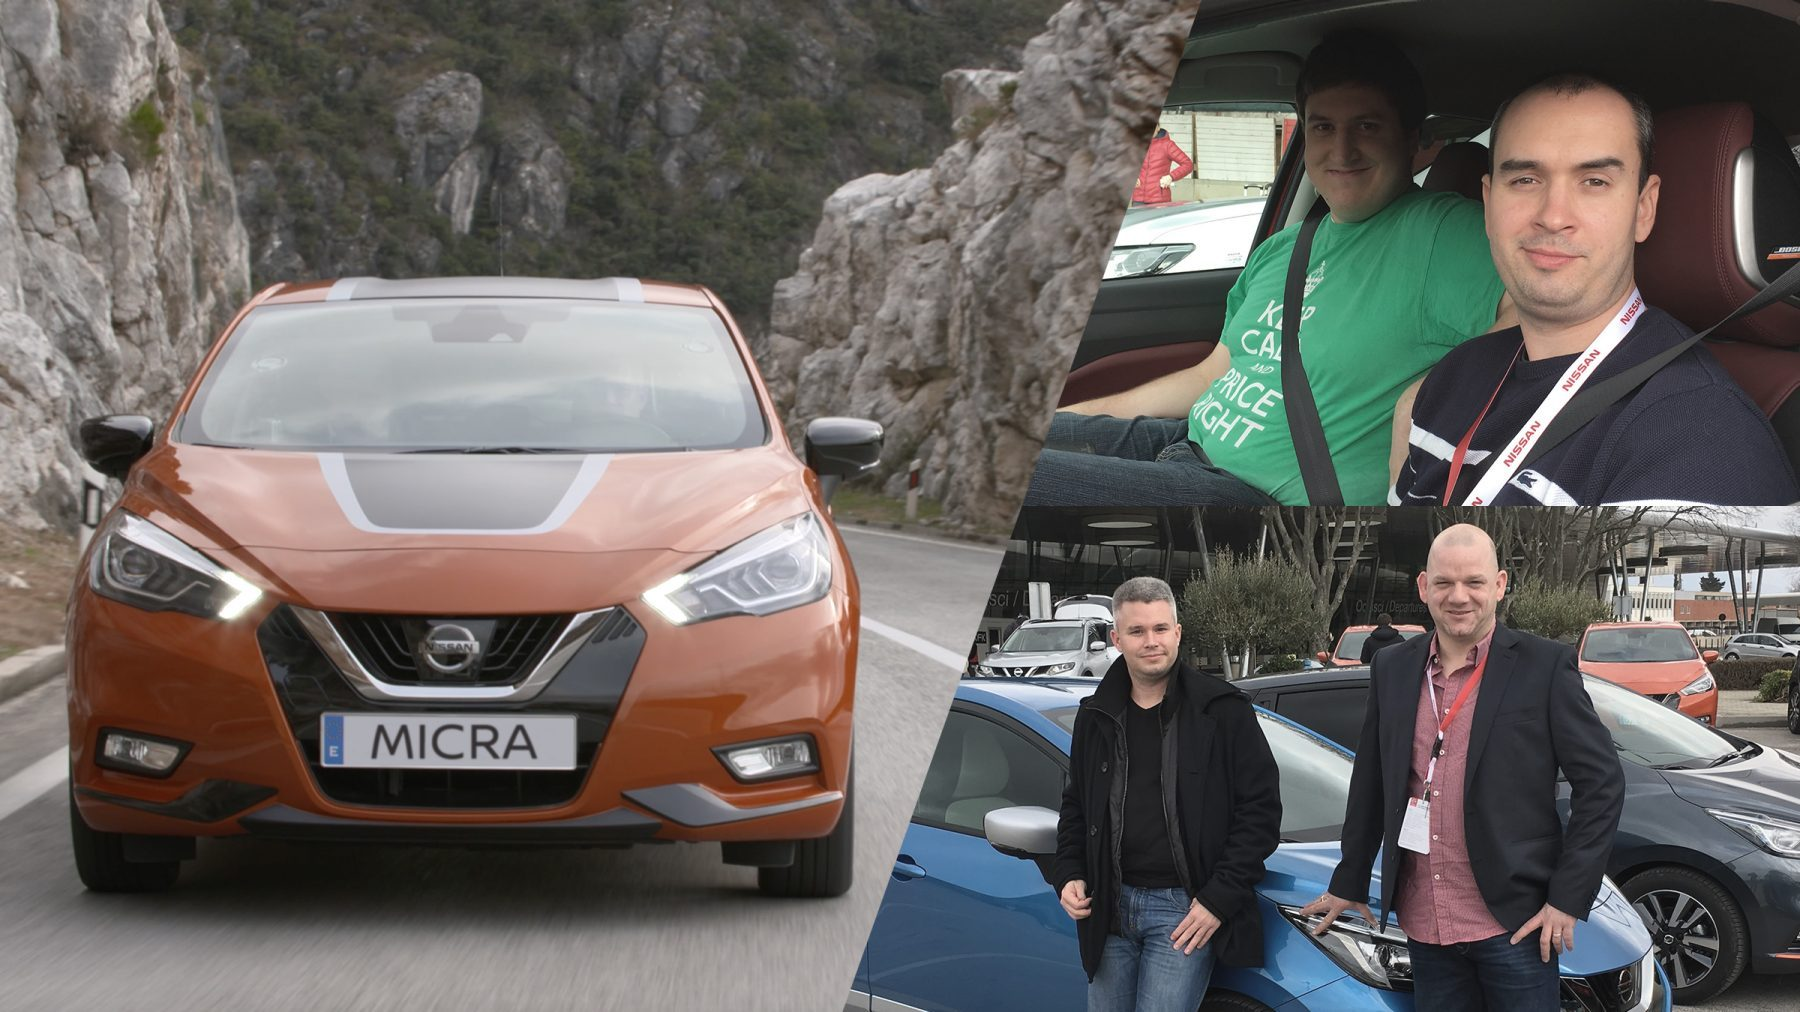 WHAT MAKES THE ALL NEW NISSAN MICRA THE IDEAL SECOND CAR?